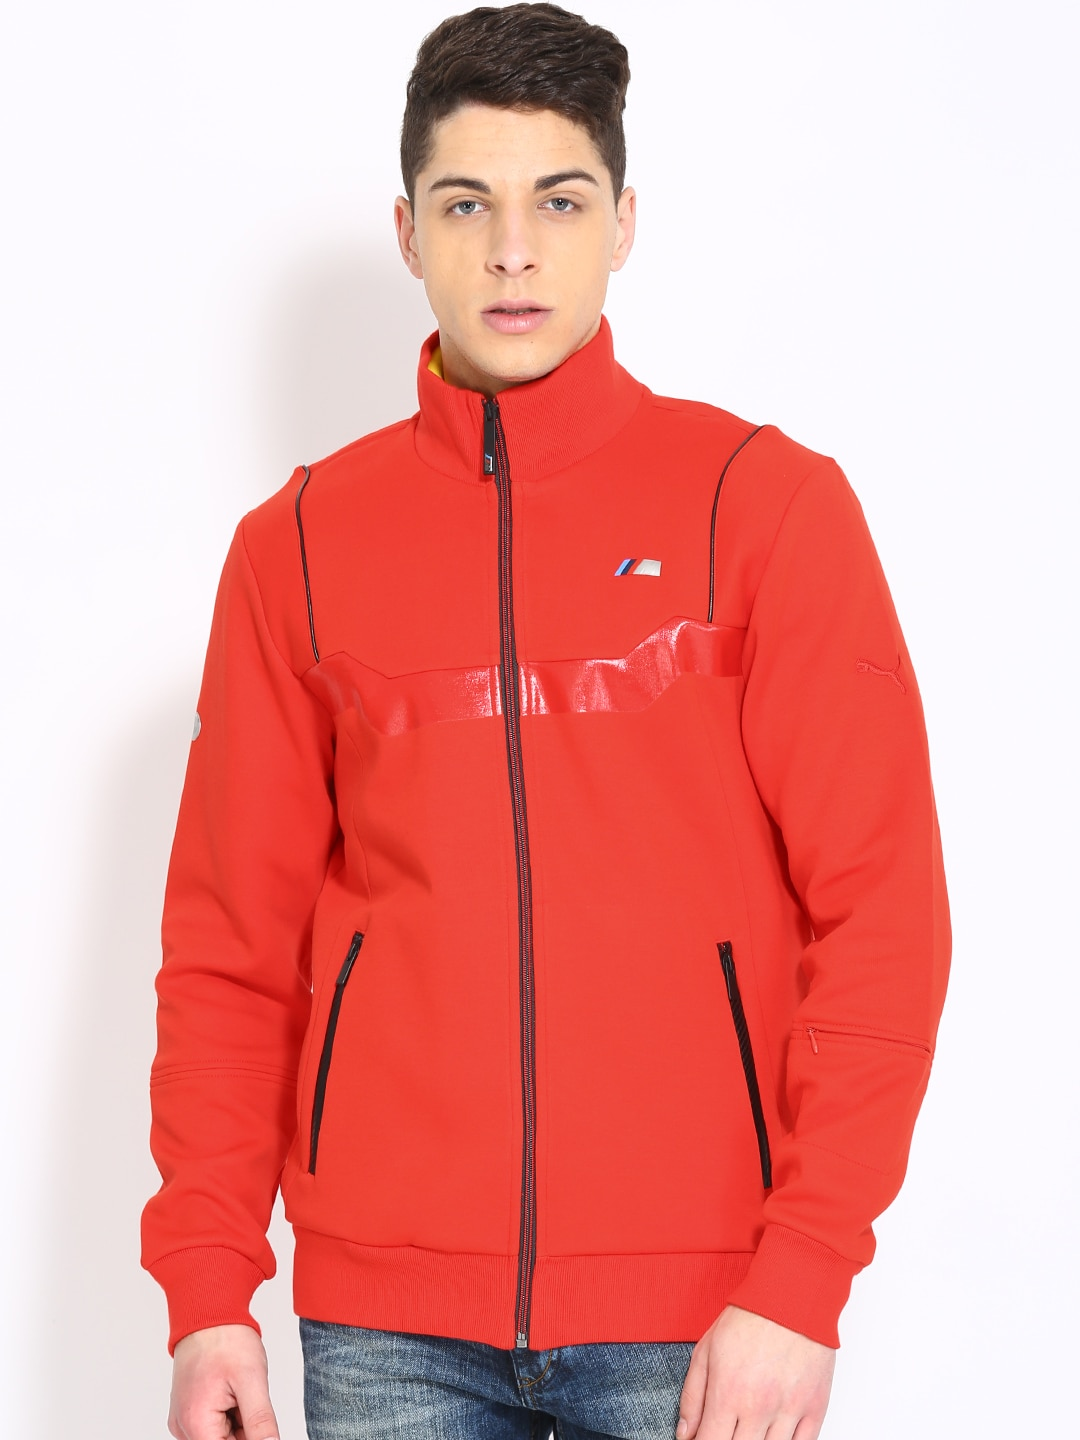 eee0b41c64d Puma 56712002 Men Red Bmw Jacket - Best Price in India